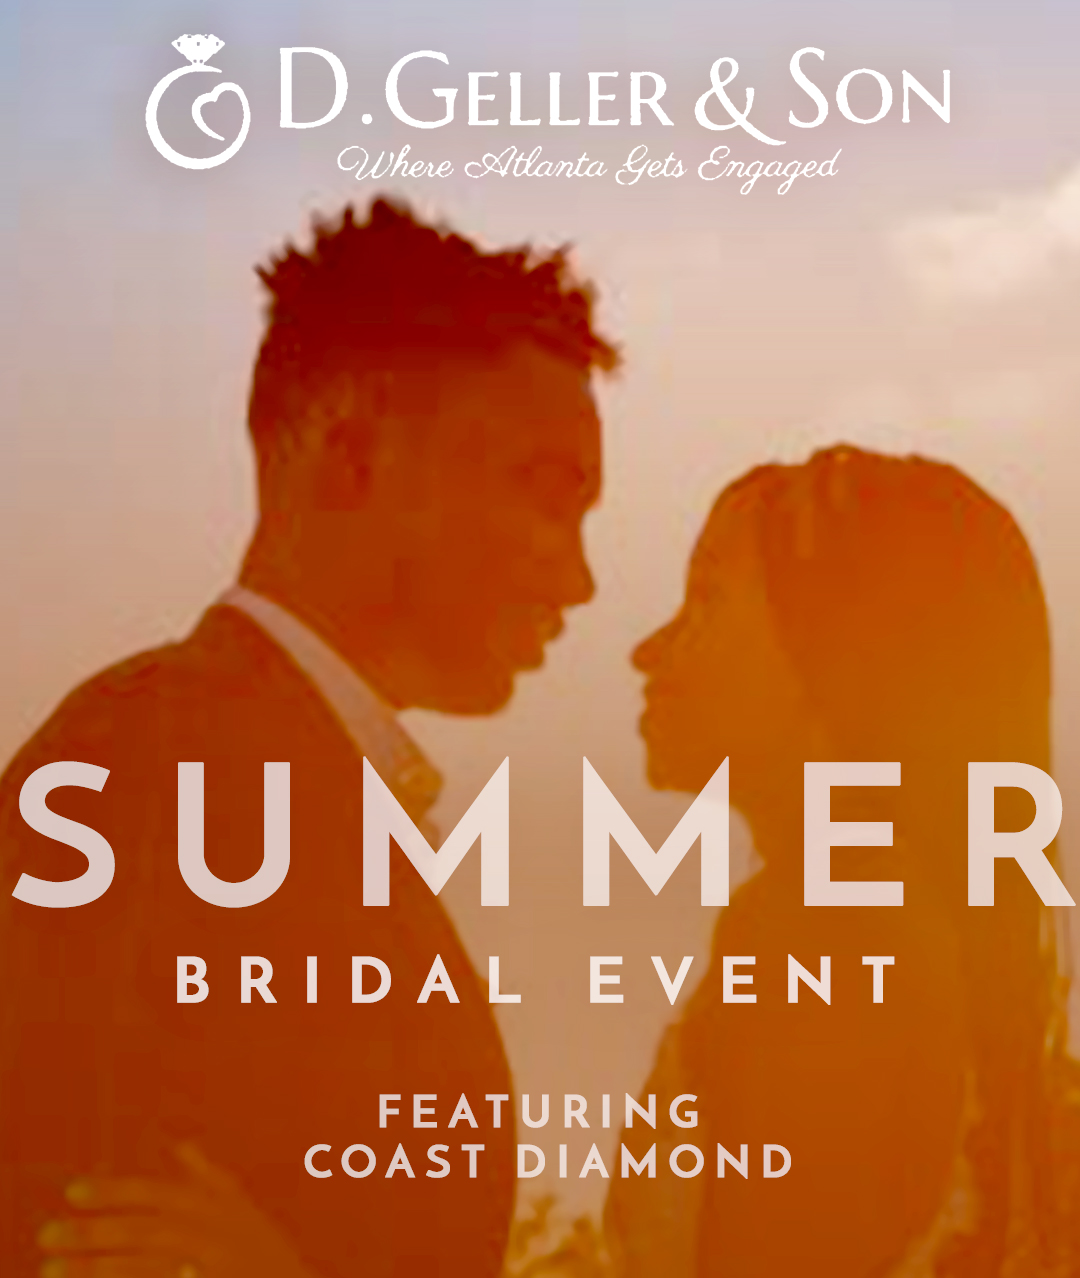 D. GELLER SUMMER BRIDAL EVENT | Featuring Coast Diamond!